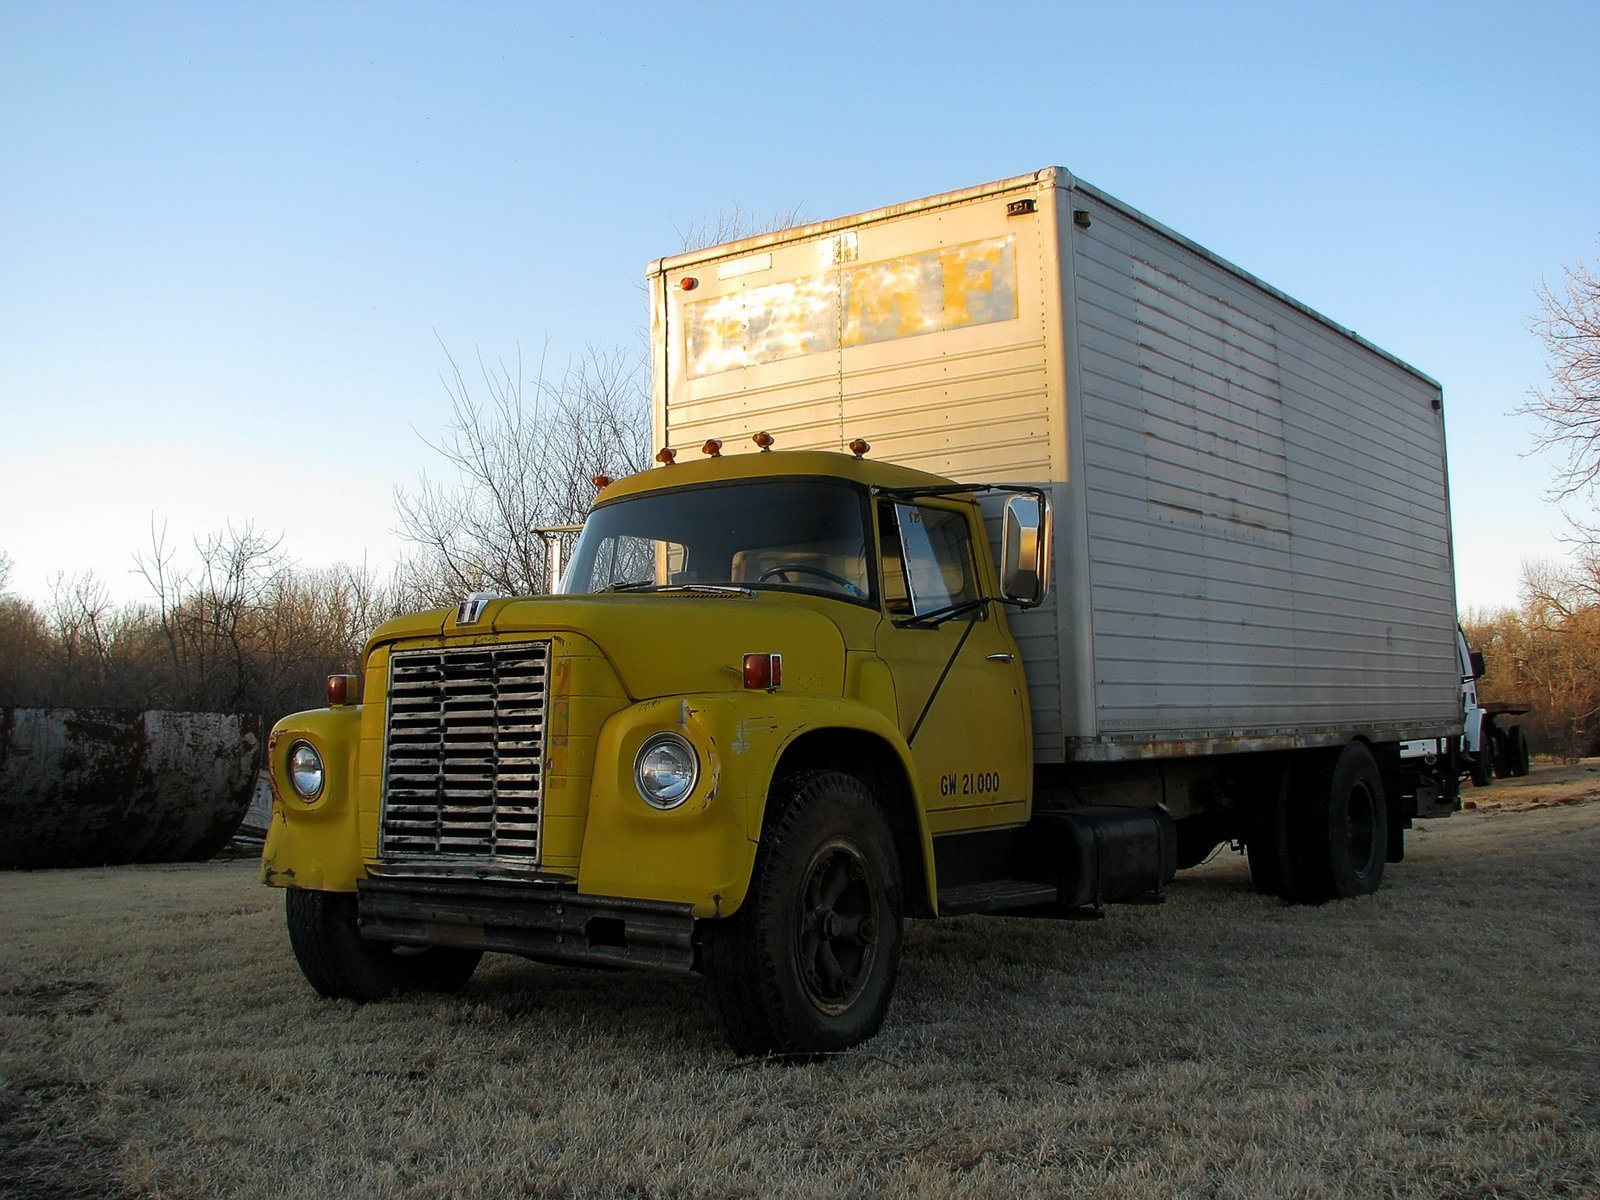 Vintage yellow moving truck